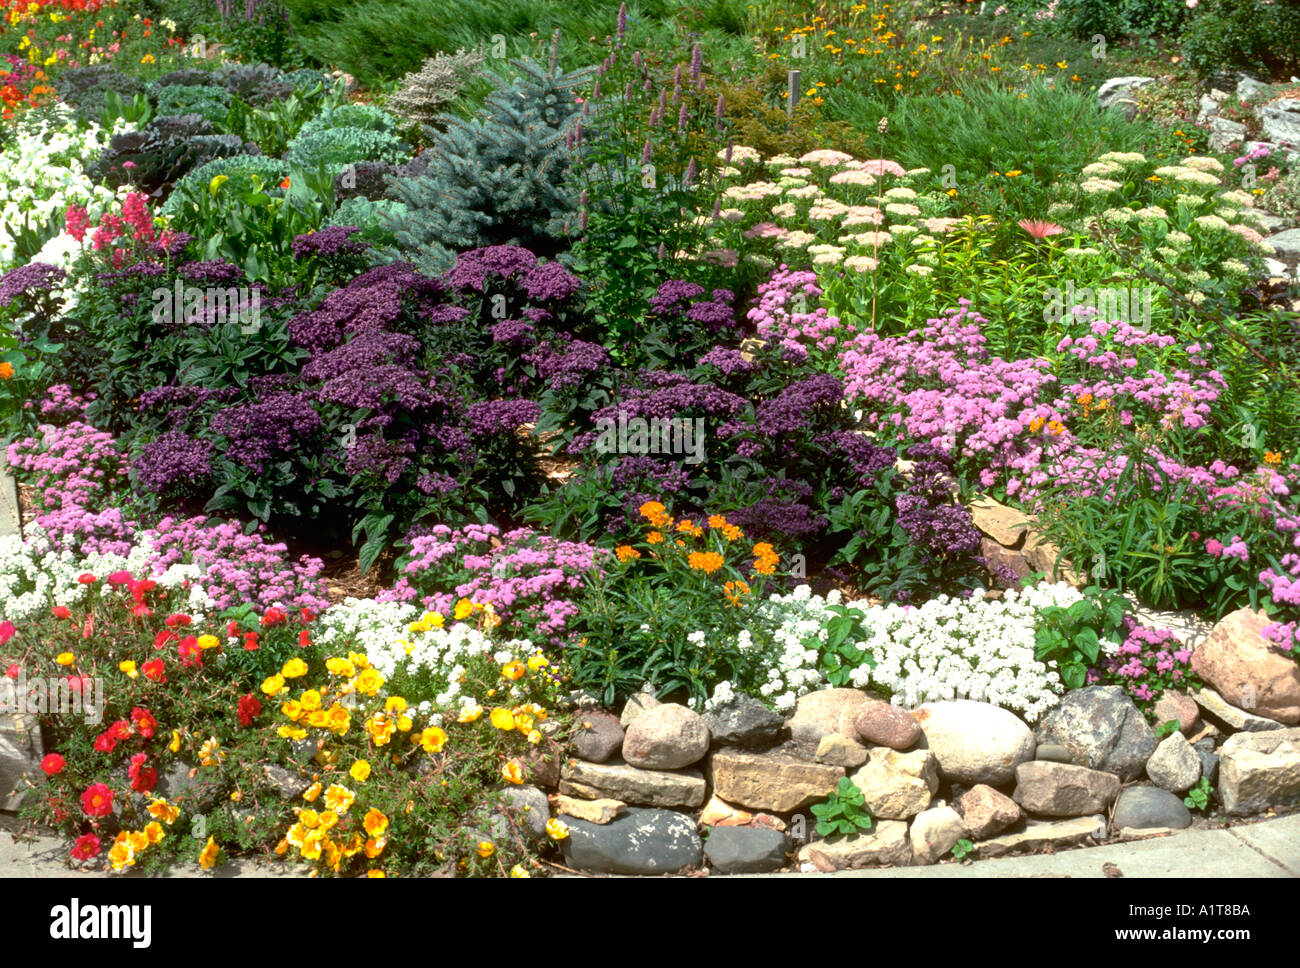 Beautiful Annual And Perennial Flower Garden Lined With A Rock